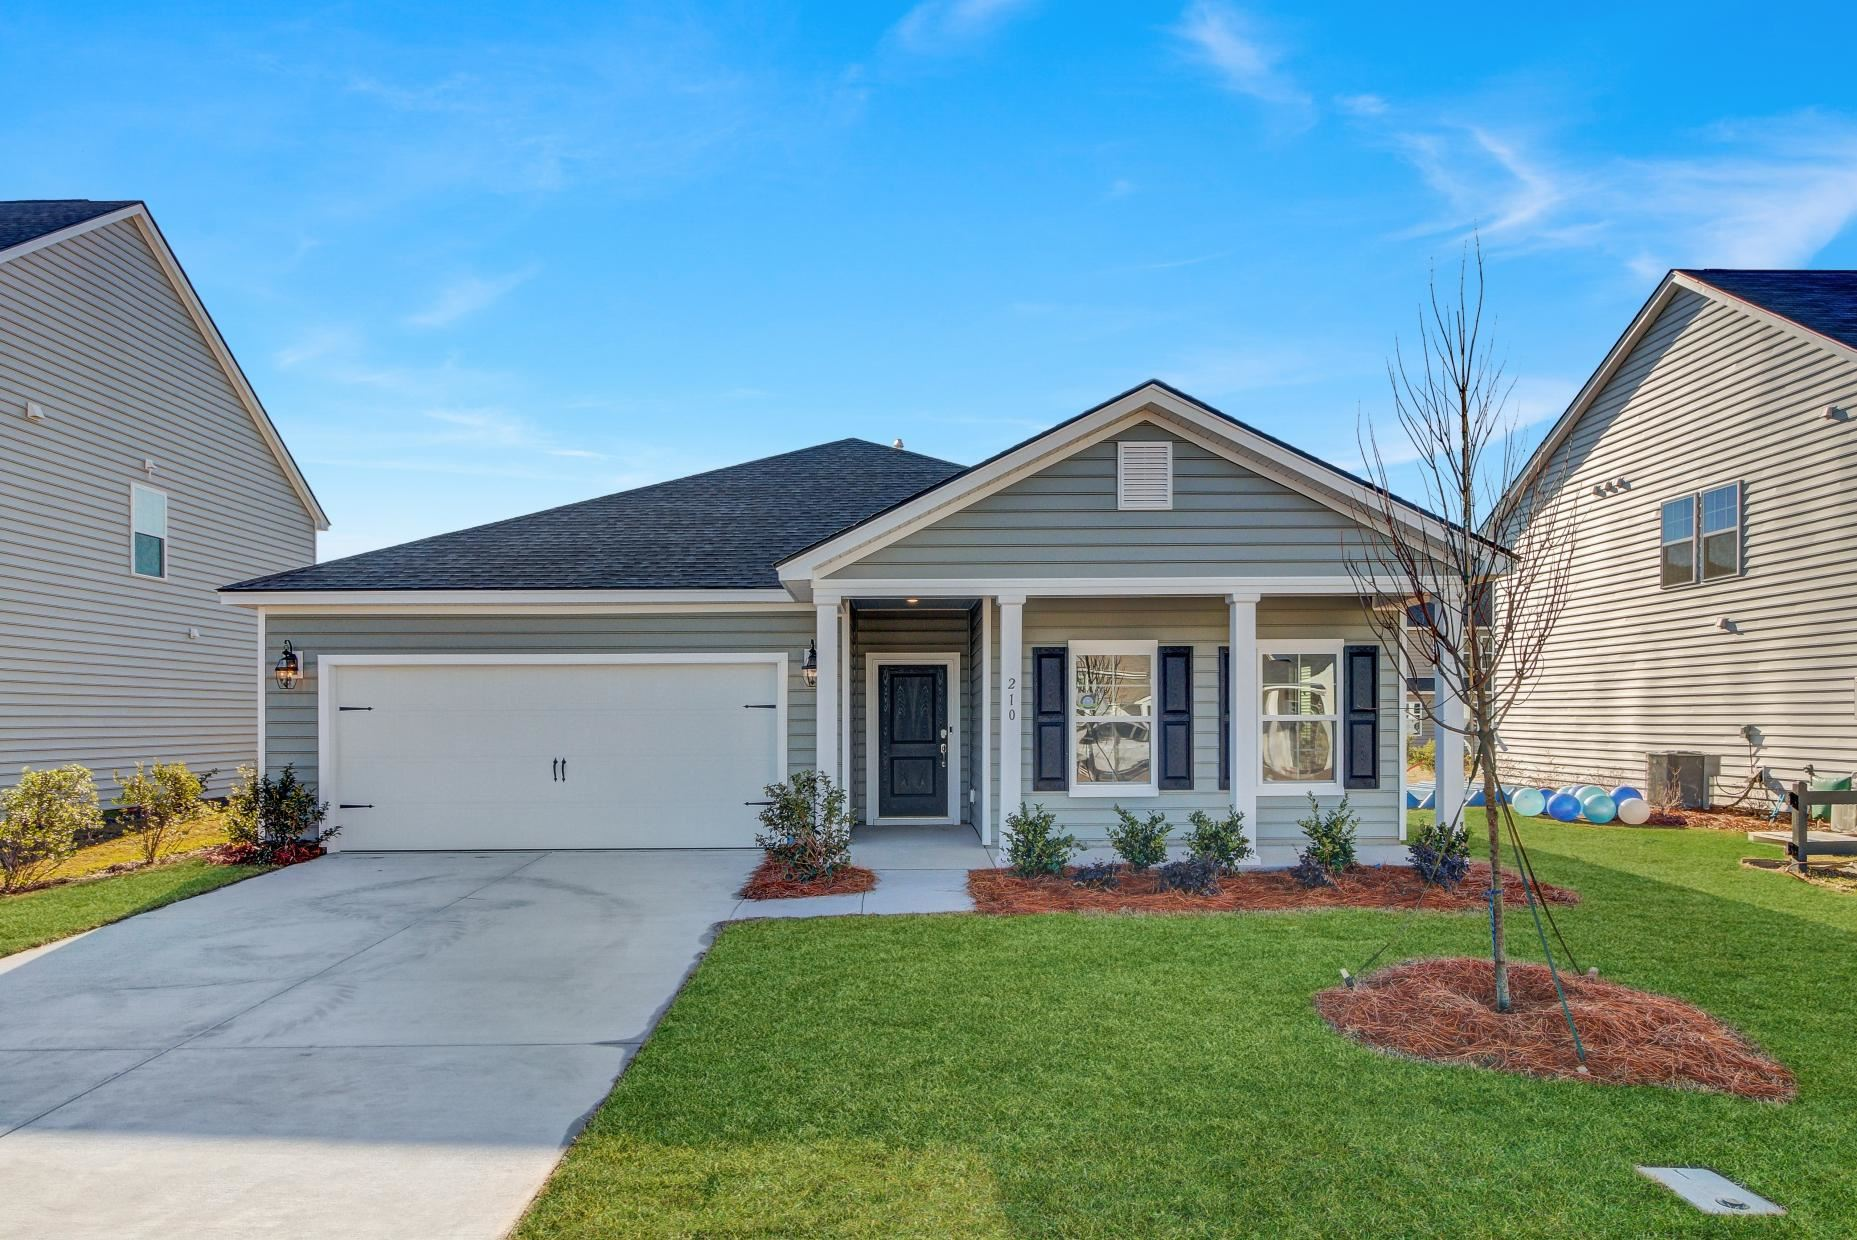 Photo of 226 West Respite Lane, Summerville, SC 29483 (MLS # 20014096)